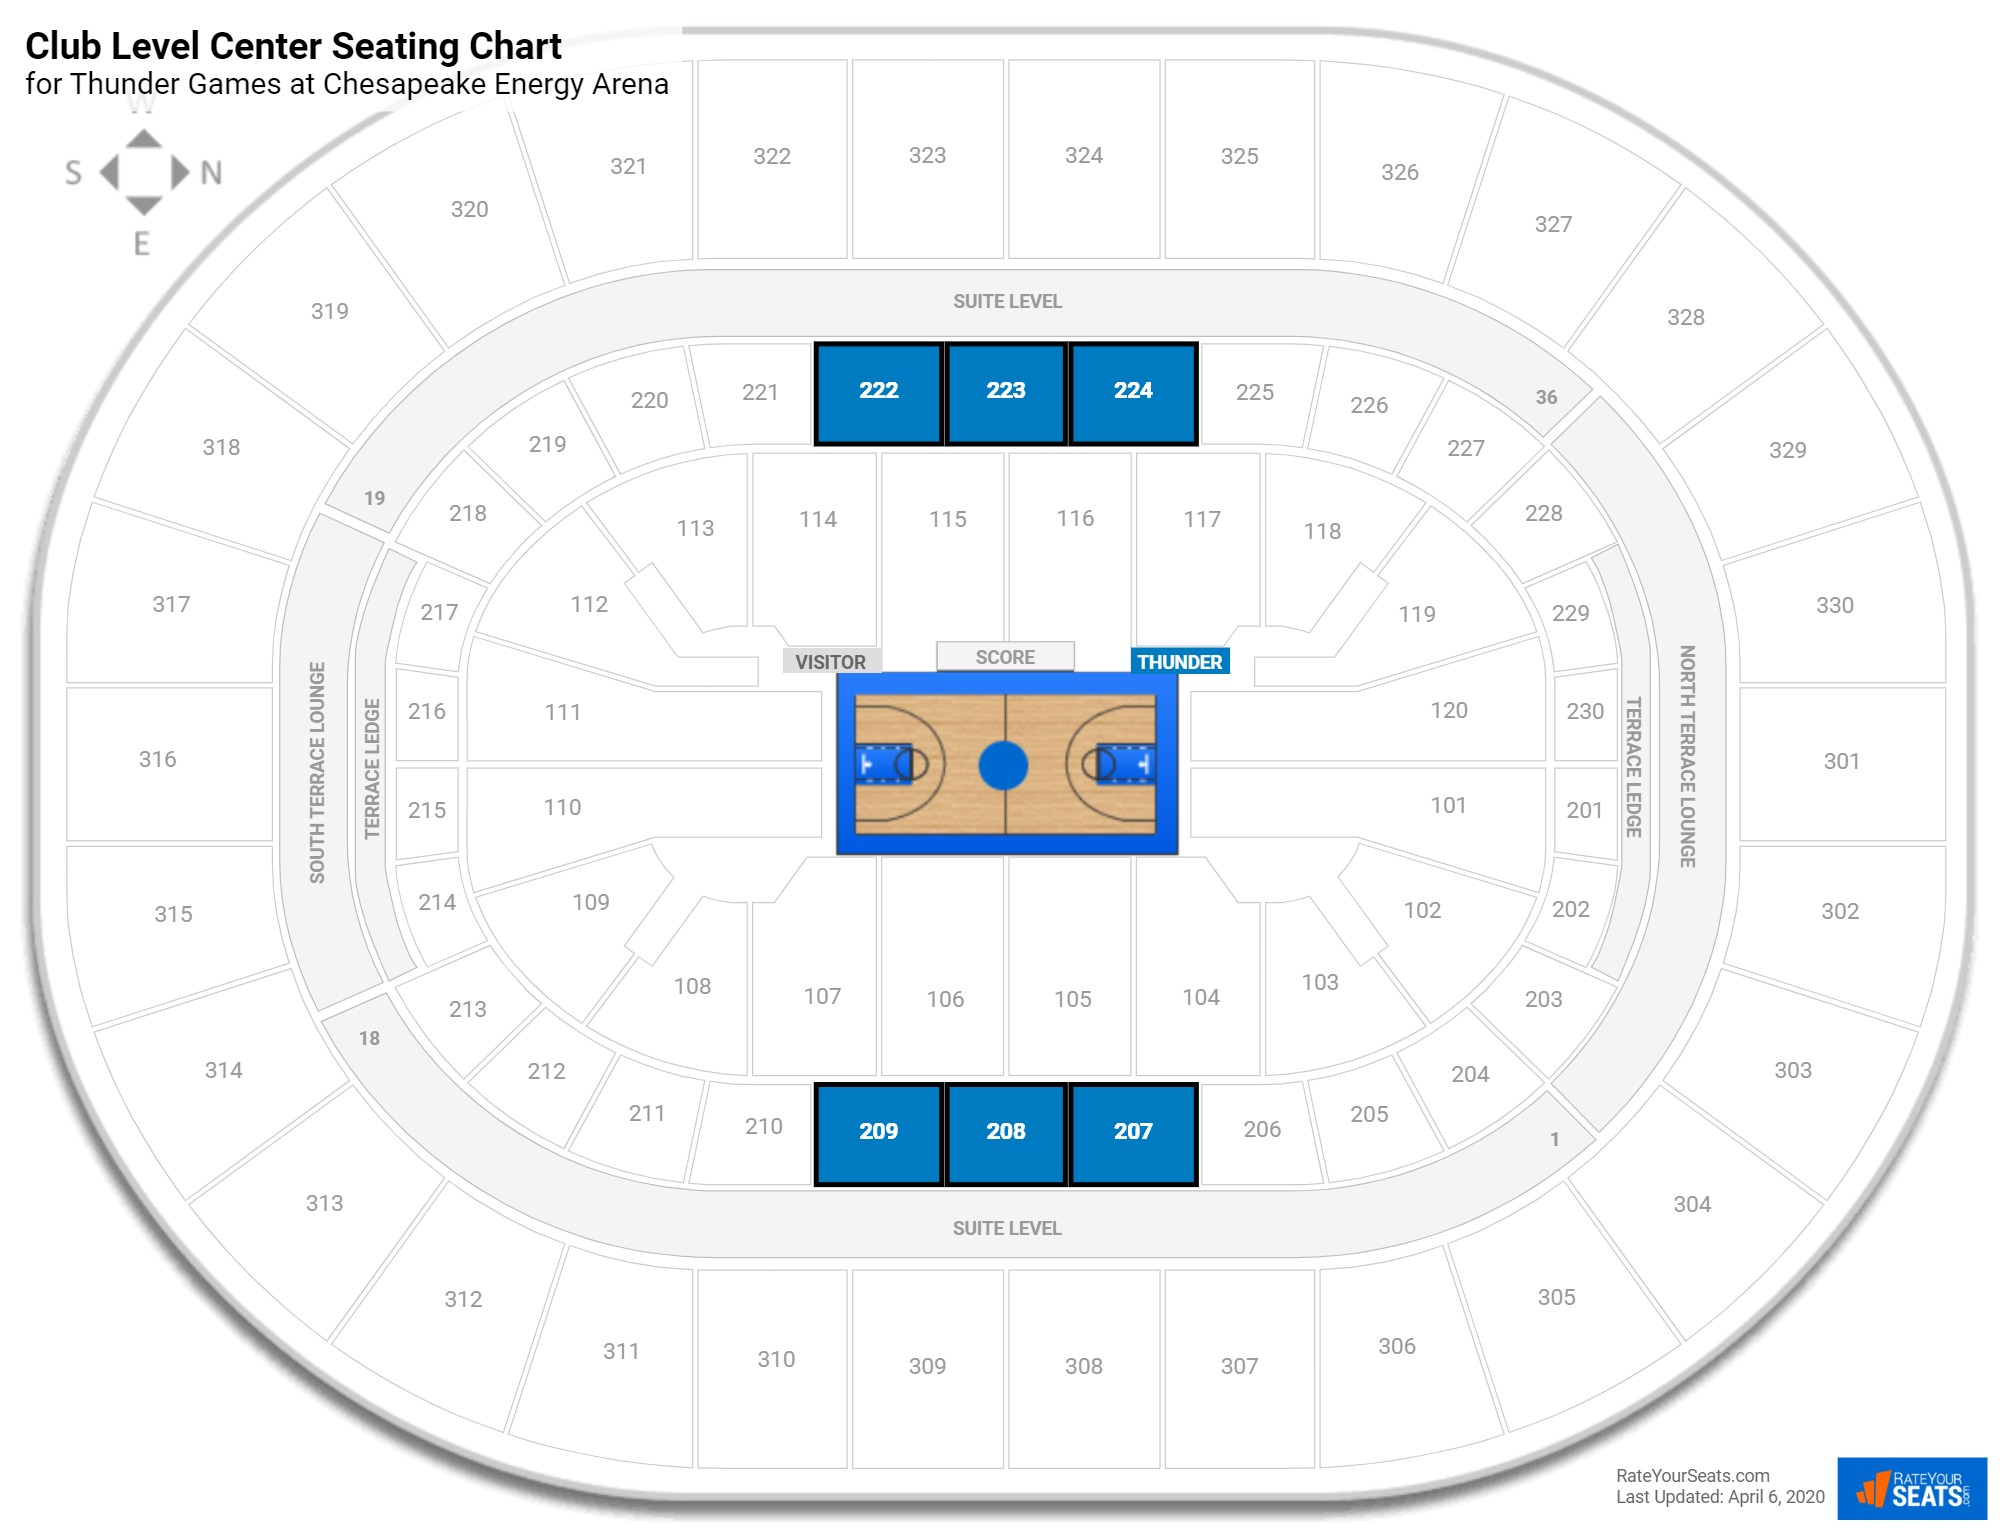 Chesapeake Energy Arena Club Level Center seating chart